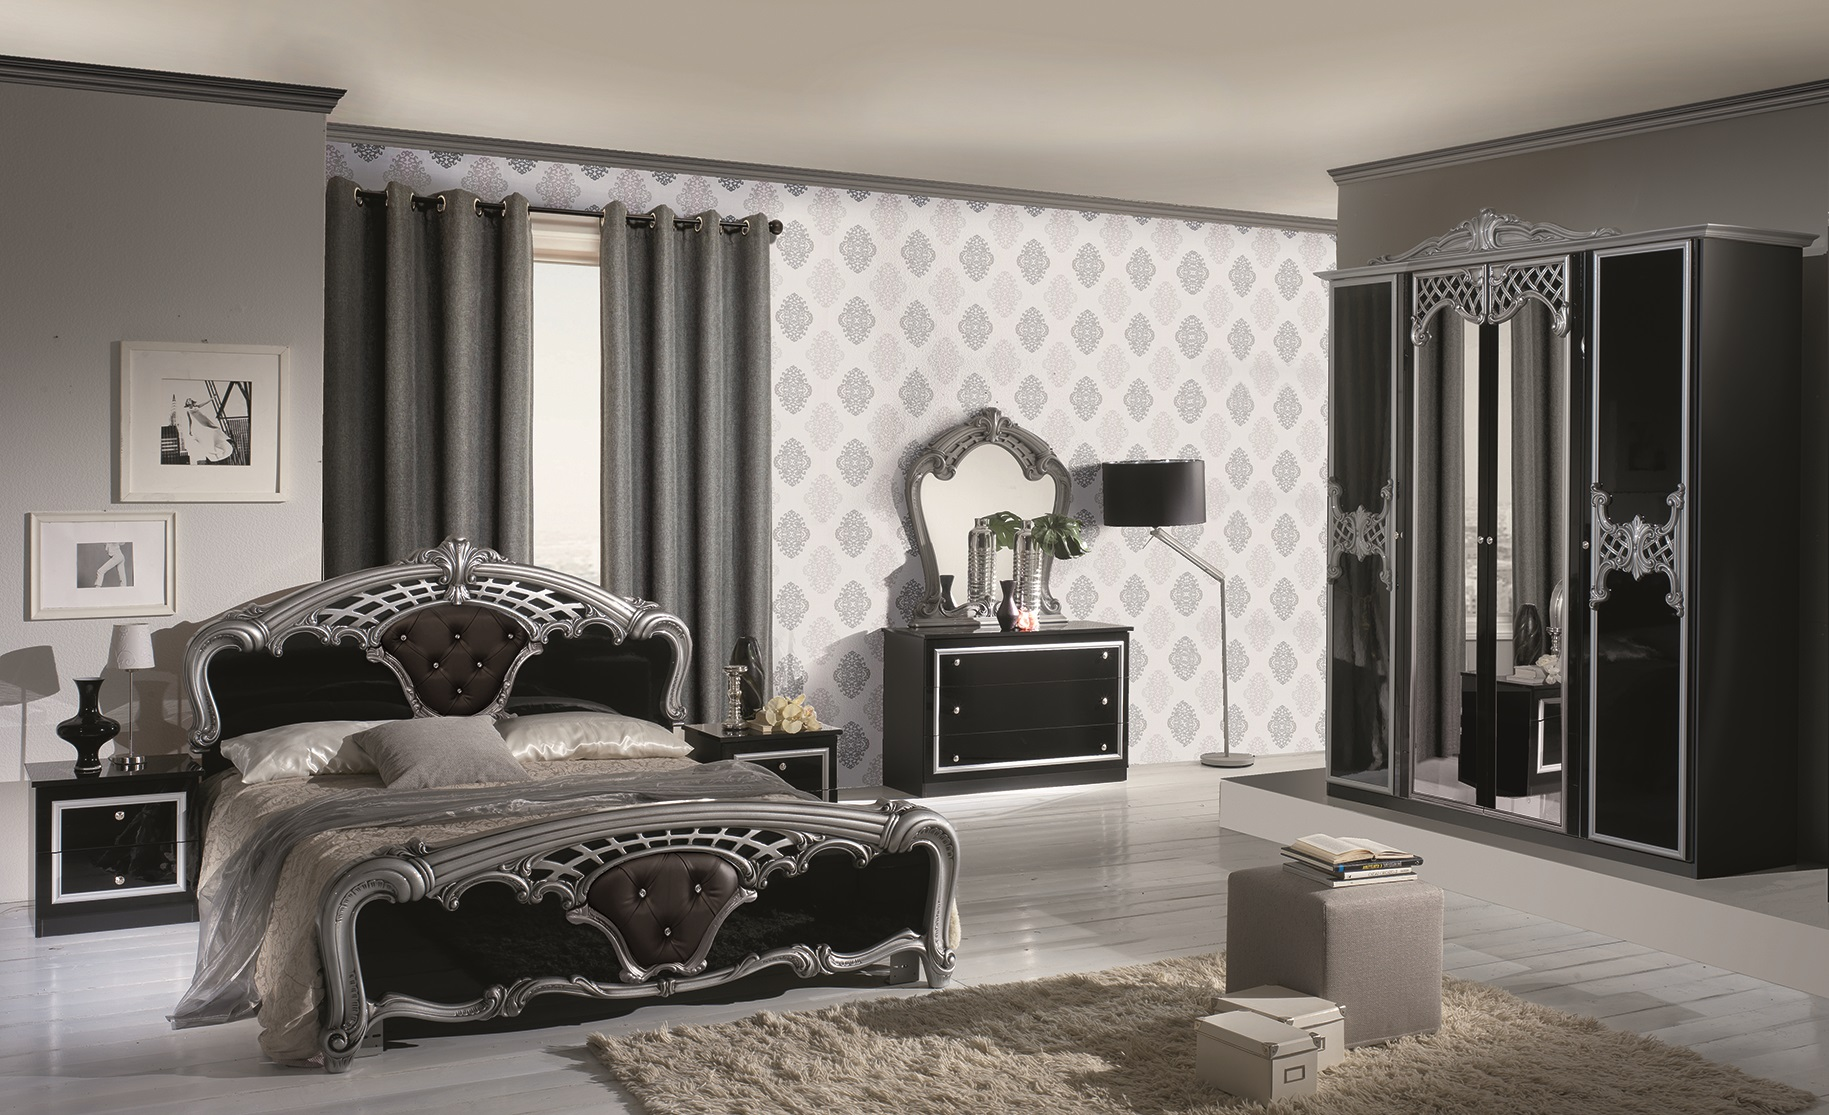 bett elisa 180x200cm in schwarz gold klassisch. Black Bedroom Furniture Sets. Home Design Ideas